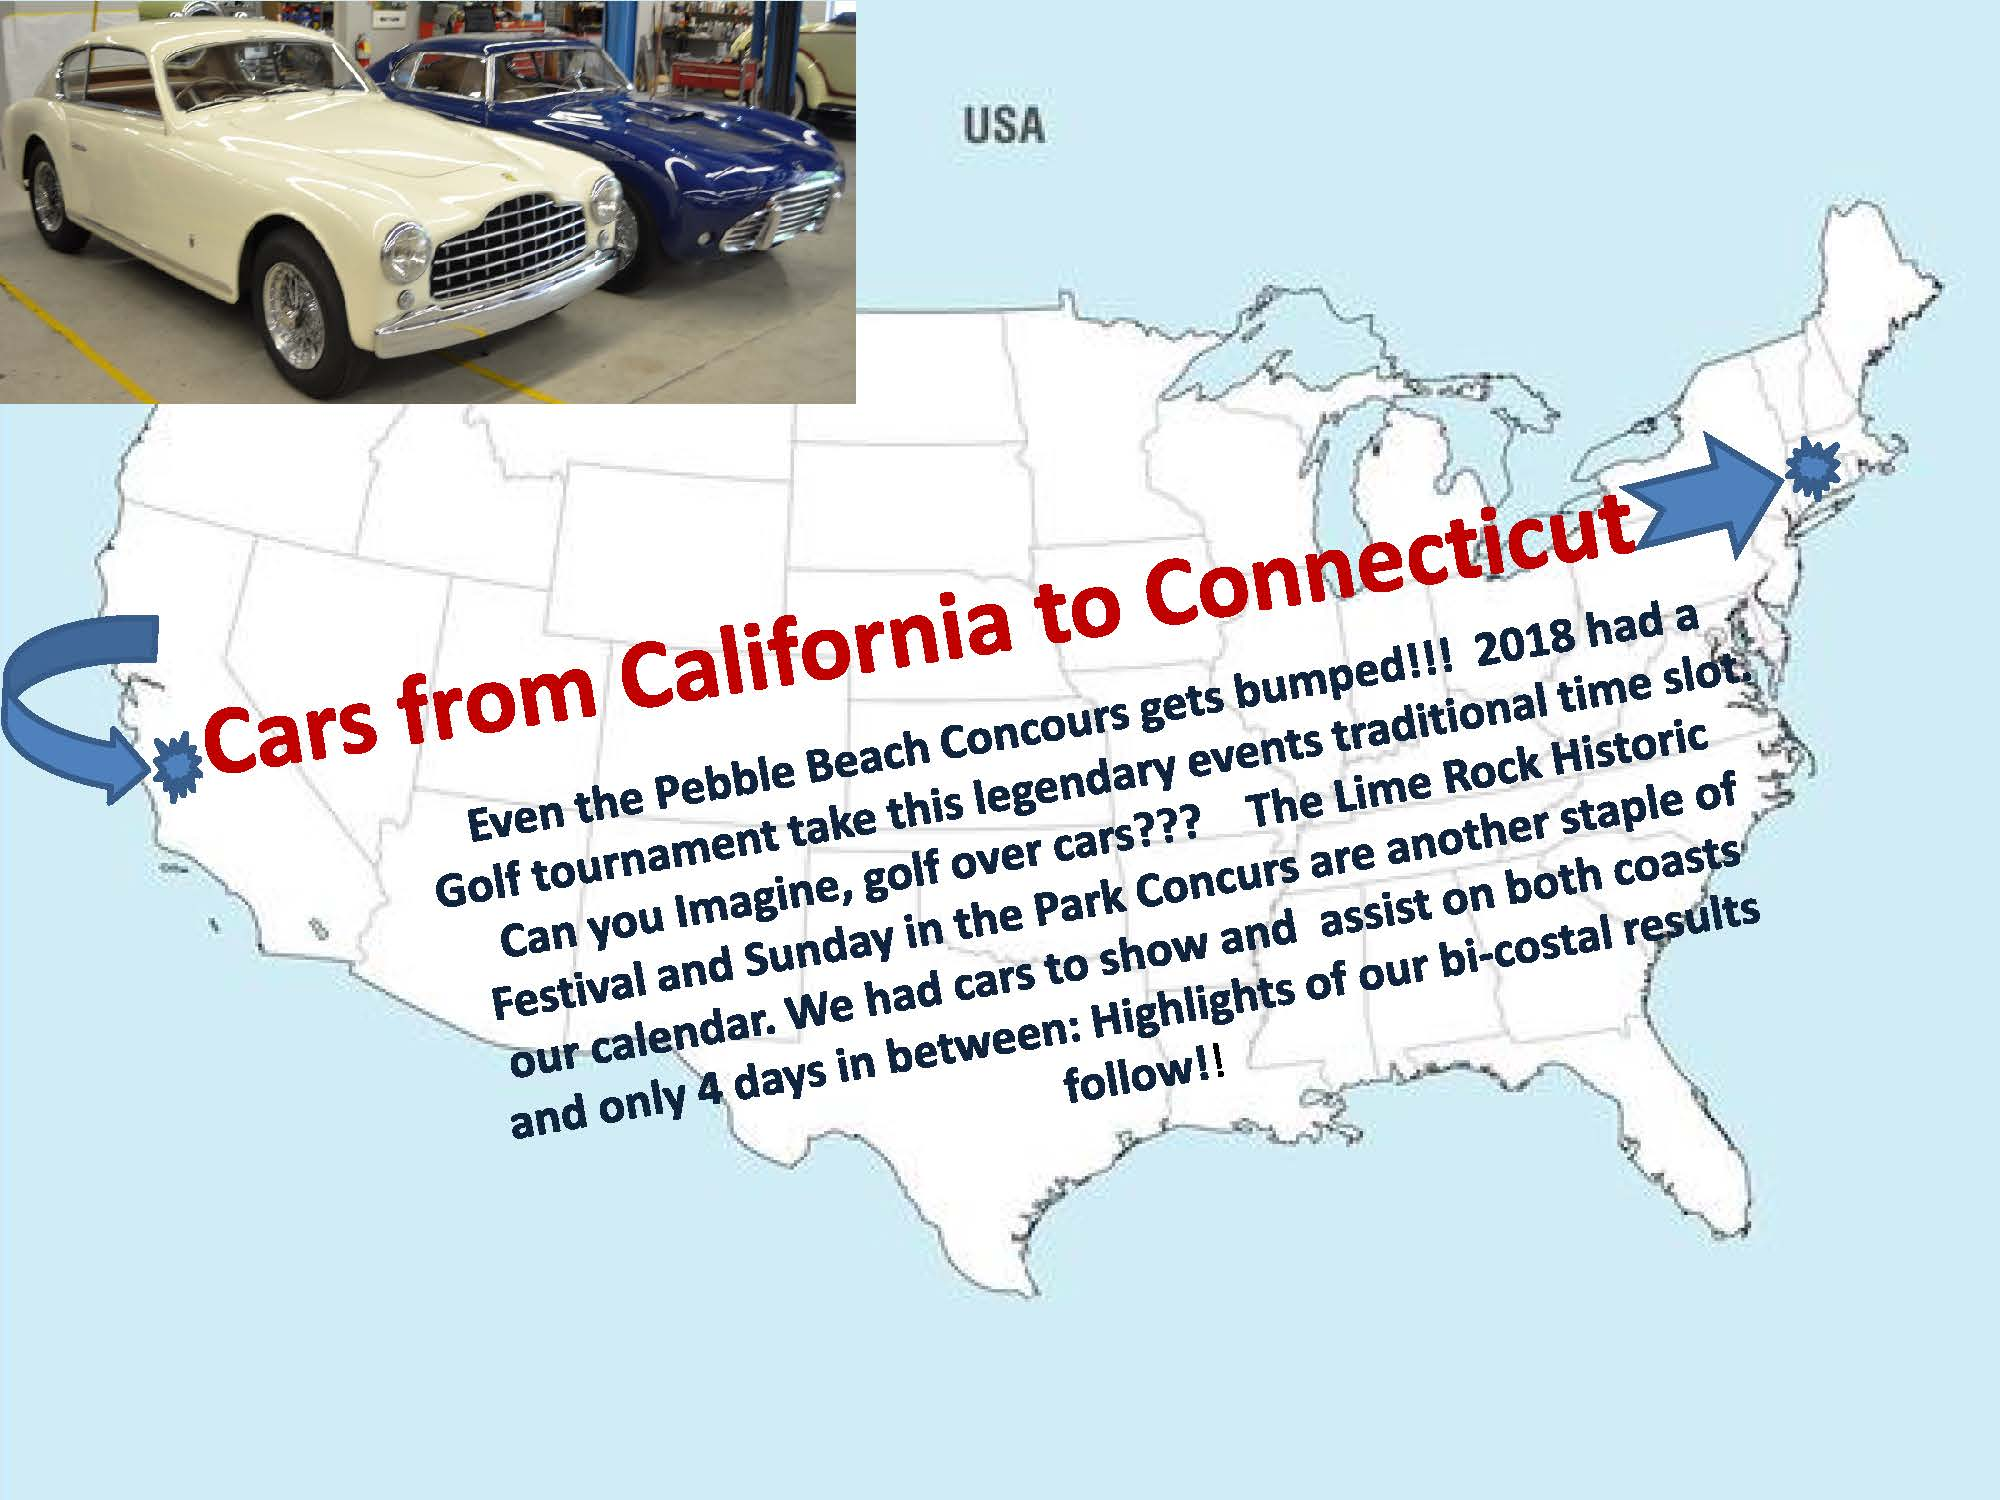 10 days & Cars in CA & CT fnl KB drft needs links_Page_01.jpg